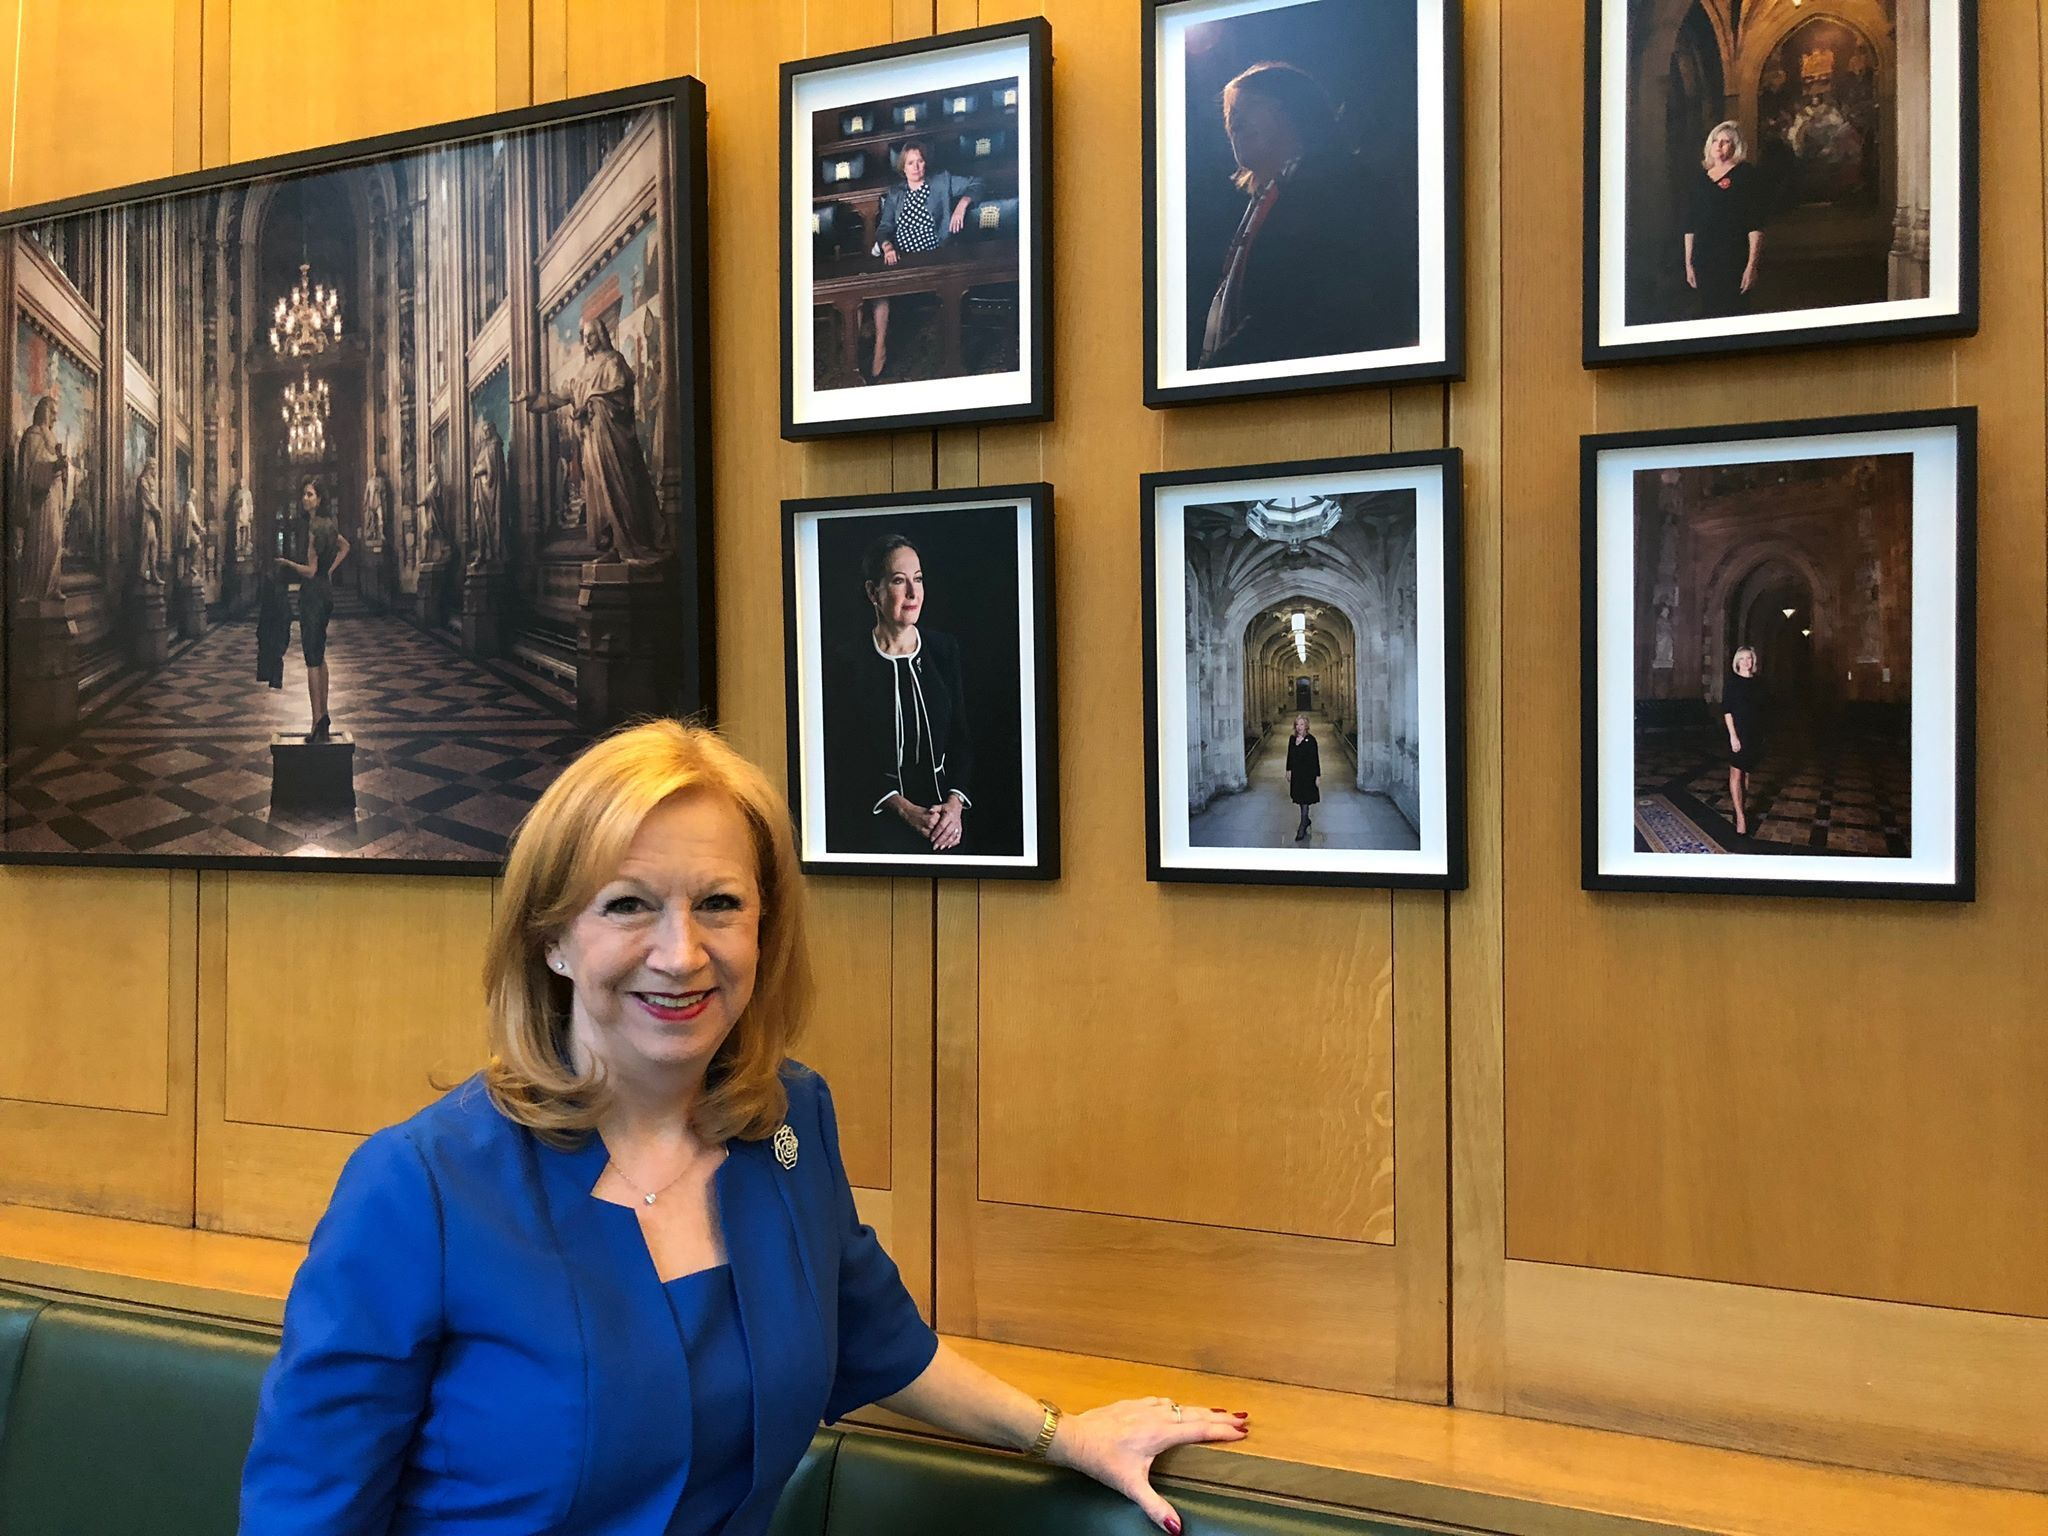 Epping Forest MP Dame Eleanor Laing features in '209 Women' exhibition